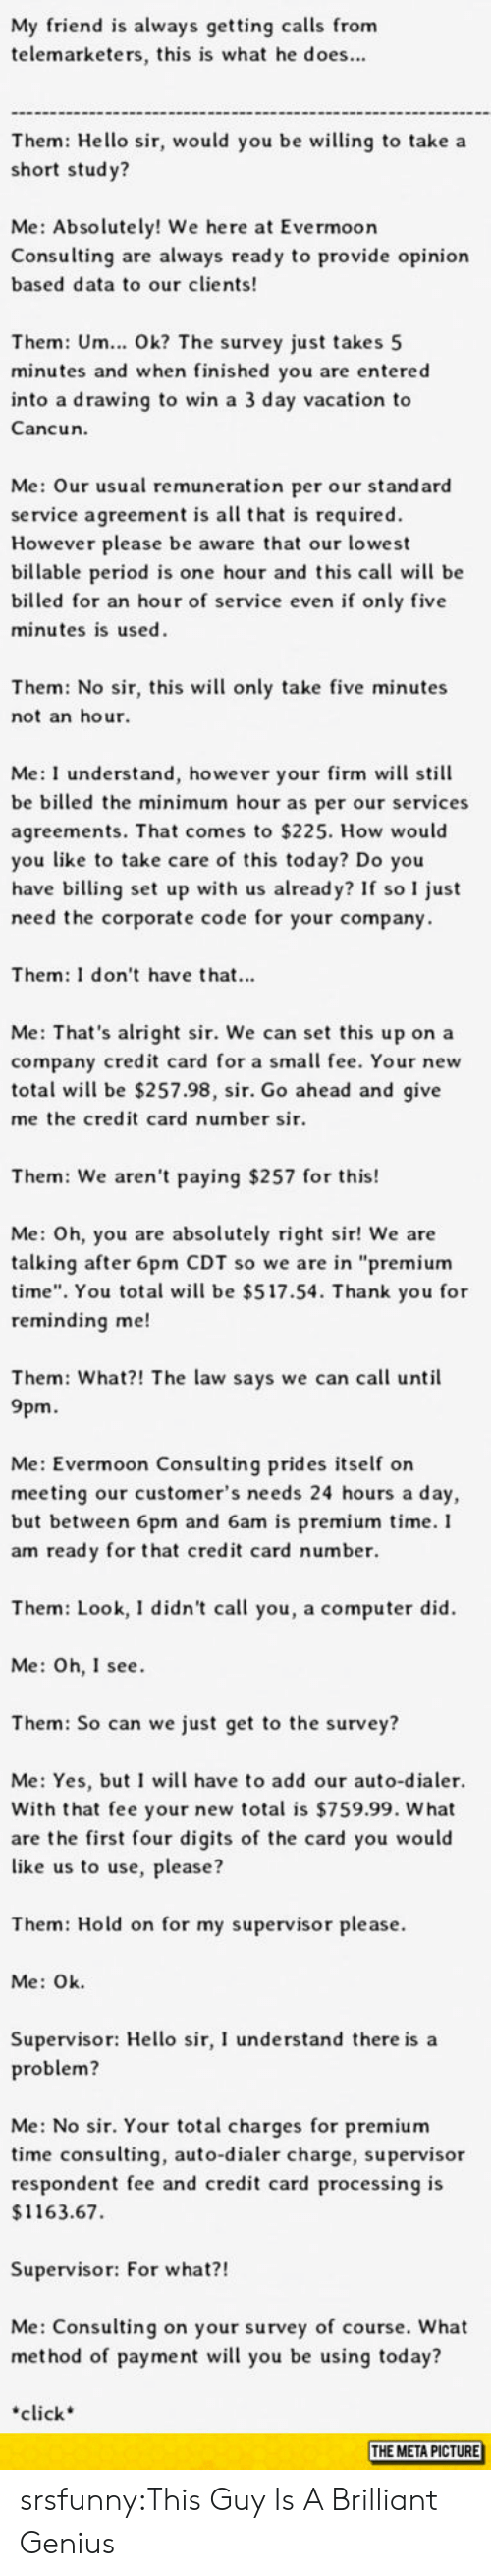 """Cancun: My friend is always getting calls from  telemarketers, this is what he does...  Them: Hello sir, would you be wing to take a  short stud y?  Me: Absolutely! We here at Evermoor  Consulting are always ready to provide opinion  based data to our clients  Them: Um... Ok? The survey just takes 5  minutes and when finished you are entered  into a drawing to win a 3 day vacation to  Cancun.  Me: Our usual remuneration per our standard  service agreement is all that is required  However please be aware that our lowest  billable period is one hour and this call will be  billed for an hour of service even if only five  minutes is used  Them: No sir, this wil only take five minutes  not an hour  Me: I understand, however your firm will still  be billed the minimum hour as per our services  agreements. That comes to $225. How would  you like to take care of this today? Do you  have billing set up with us already? If so I just  need the corporate code for your company  Them: I don't have that...  Me: That's alright sir. We can set this up on a  company credit card for a small fee. Your new  total wil be $257.98, sir. Go ahead and give  me the credit card number sir  Them: We aren't paying $257 for this!  Me: Oh, you are absolutely right sir! We are  talking after 6pm CDT so we are in """"premium  time"""". You total wil be $517.54. Thank you for  reminding me!  Them: What?! The law says we can call until  9pm.  Me: Evermoon Consulting prides self on  meeting our customer's needs 24 hours a day,  but between 6pm and 6am is premium time.I  am ready for that credit card number.  Them: Look, I didn't call you, a computer did  Me: Oh, I see  Them: So can we just get to the survey?  Me: Yes, but I will have to add our auto-dialer.  With that fee your new total is $759.99. What  are the first four digits of the card you would  like us to use, please?  Them: Hold on for my supervisor please.  Me: Ok  Supervisor: Hello sir, I understand there is a  roblem?  Me: No sir. Your total char"""